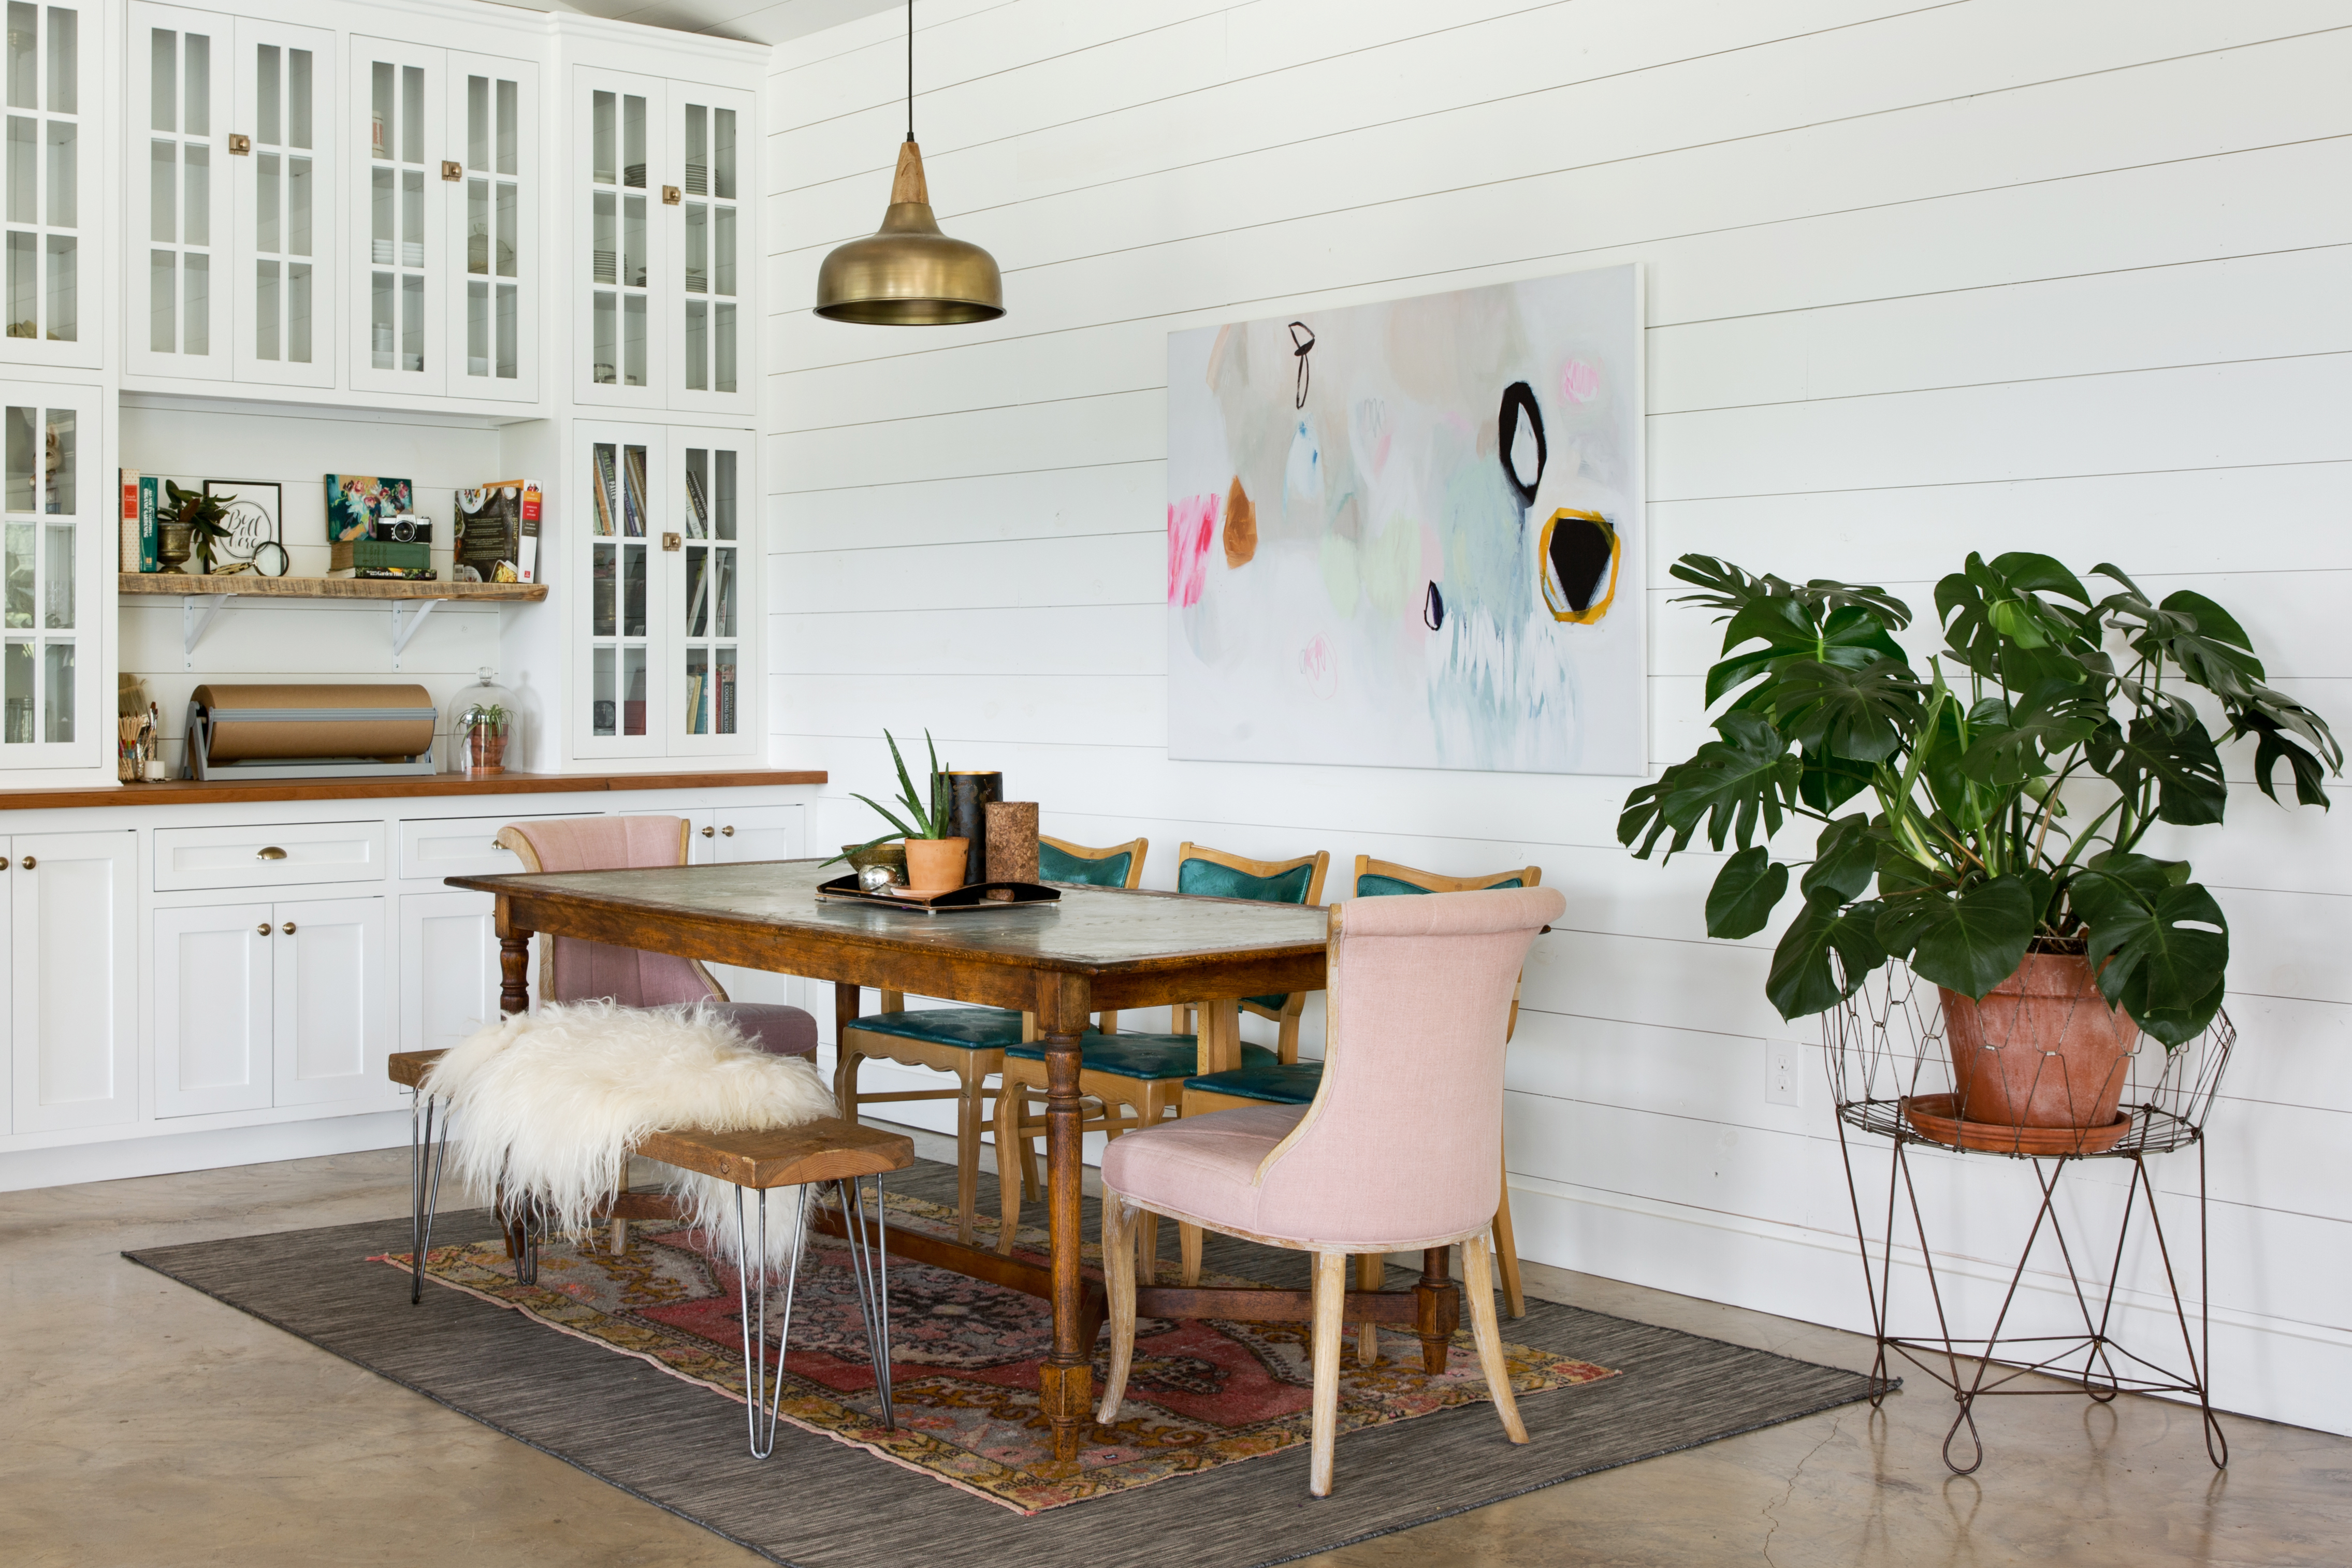 Get The Look Of This Layered, Rustic Glam Dining Room | Apartment With Regard To Best And Newest Partin 3 Piece Dining Sets (View 7 of 20)